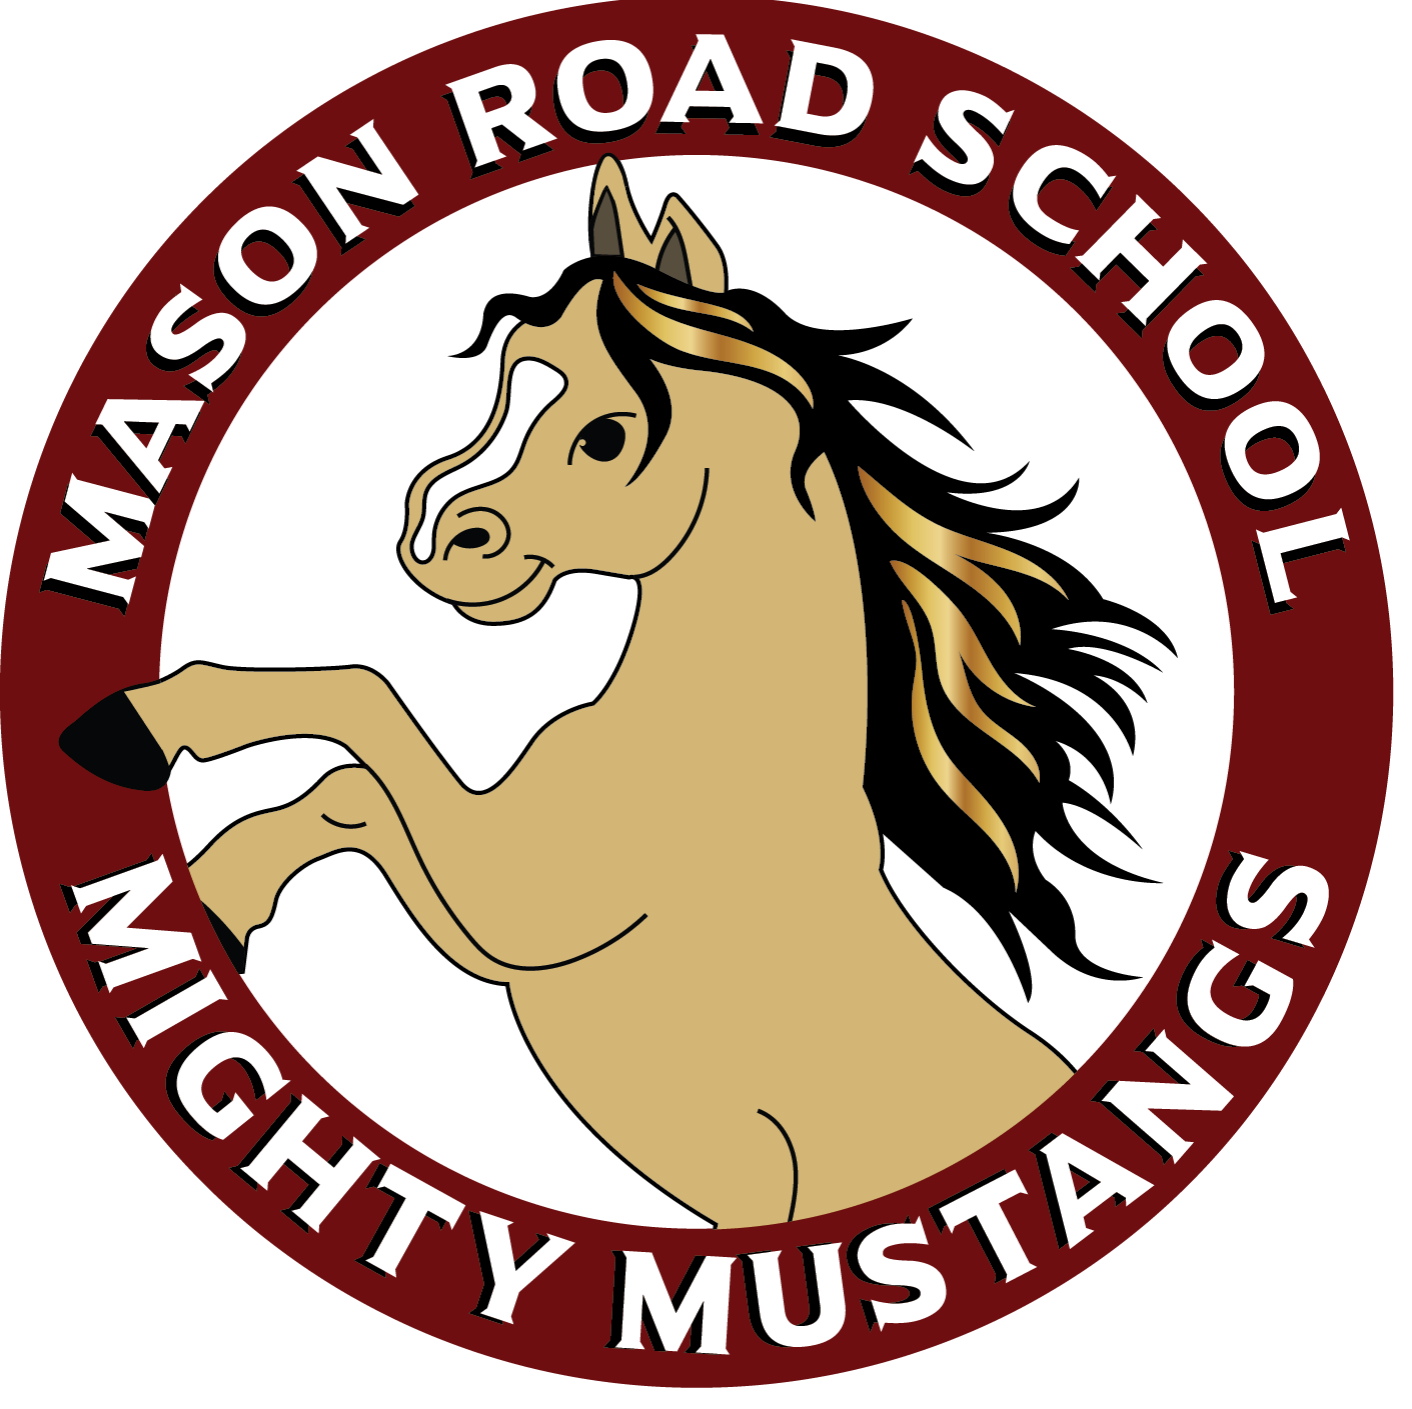 Dudley charlton regional district. Mustang clipart central middle school